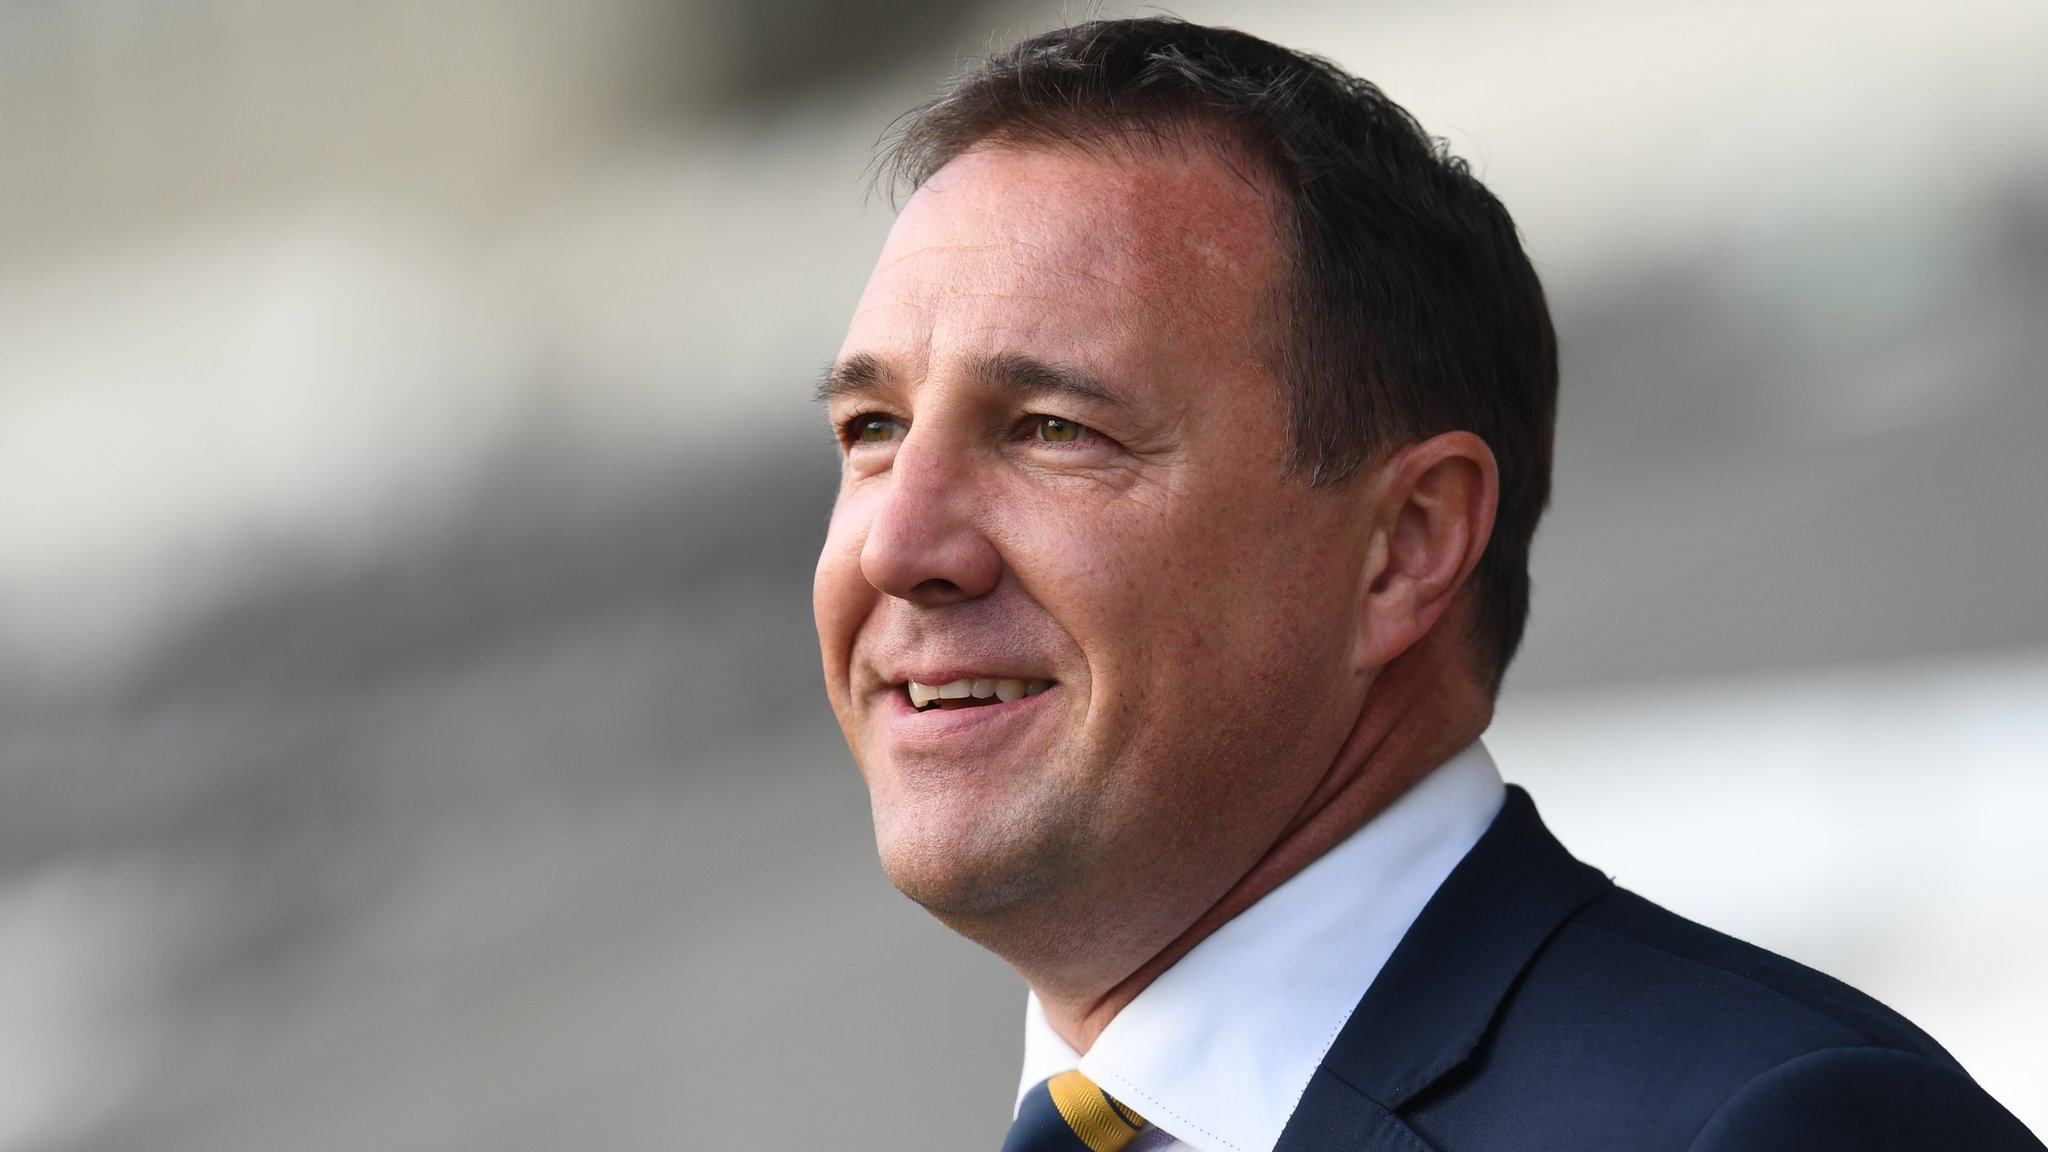 Scotland: Malky Mackay takes interim charge for Netherlands friendly